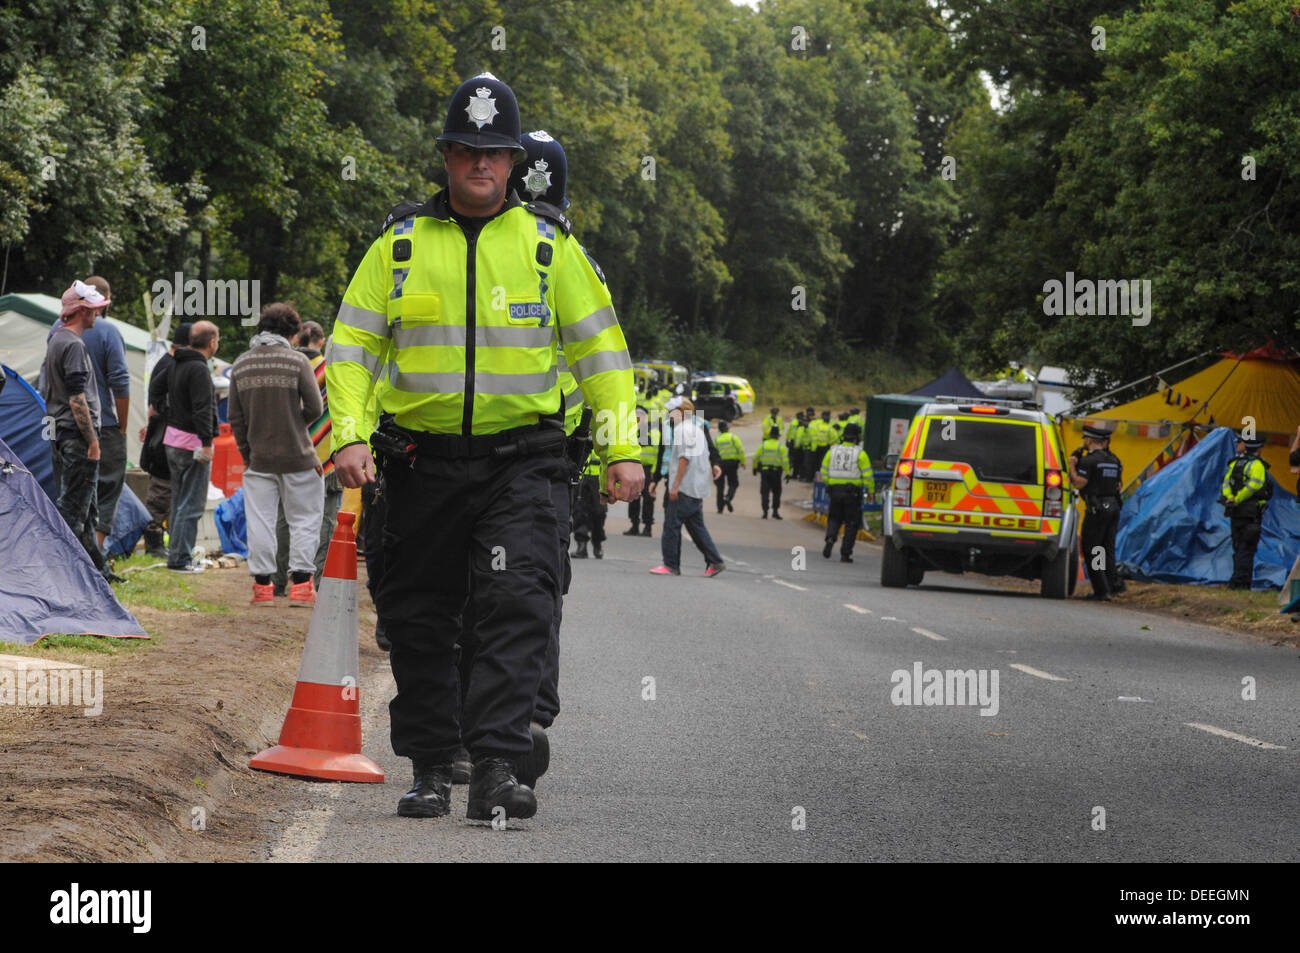 Balcombe, West Sussex, UK. 16th Sep, 2013. Environmental protesters watch as Police prepare to line the roadside for another lorry departure from the Cuadrilla site. Protesters lately have not seen to be disrupting Police in their duties and the atmosphere has been very relaxed and amicable. .Environmentalists rejoiced after todays failed attempt by West Sussex County  in the high court, due flawed case, to evict them from the road side camp. © David Burr/Alamy Live News - Stock Image